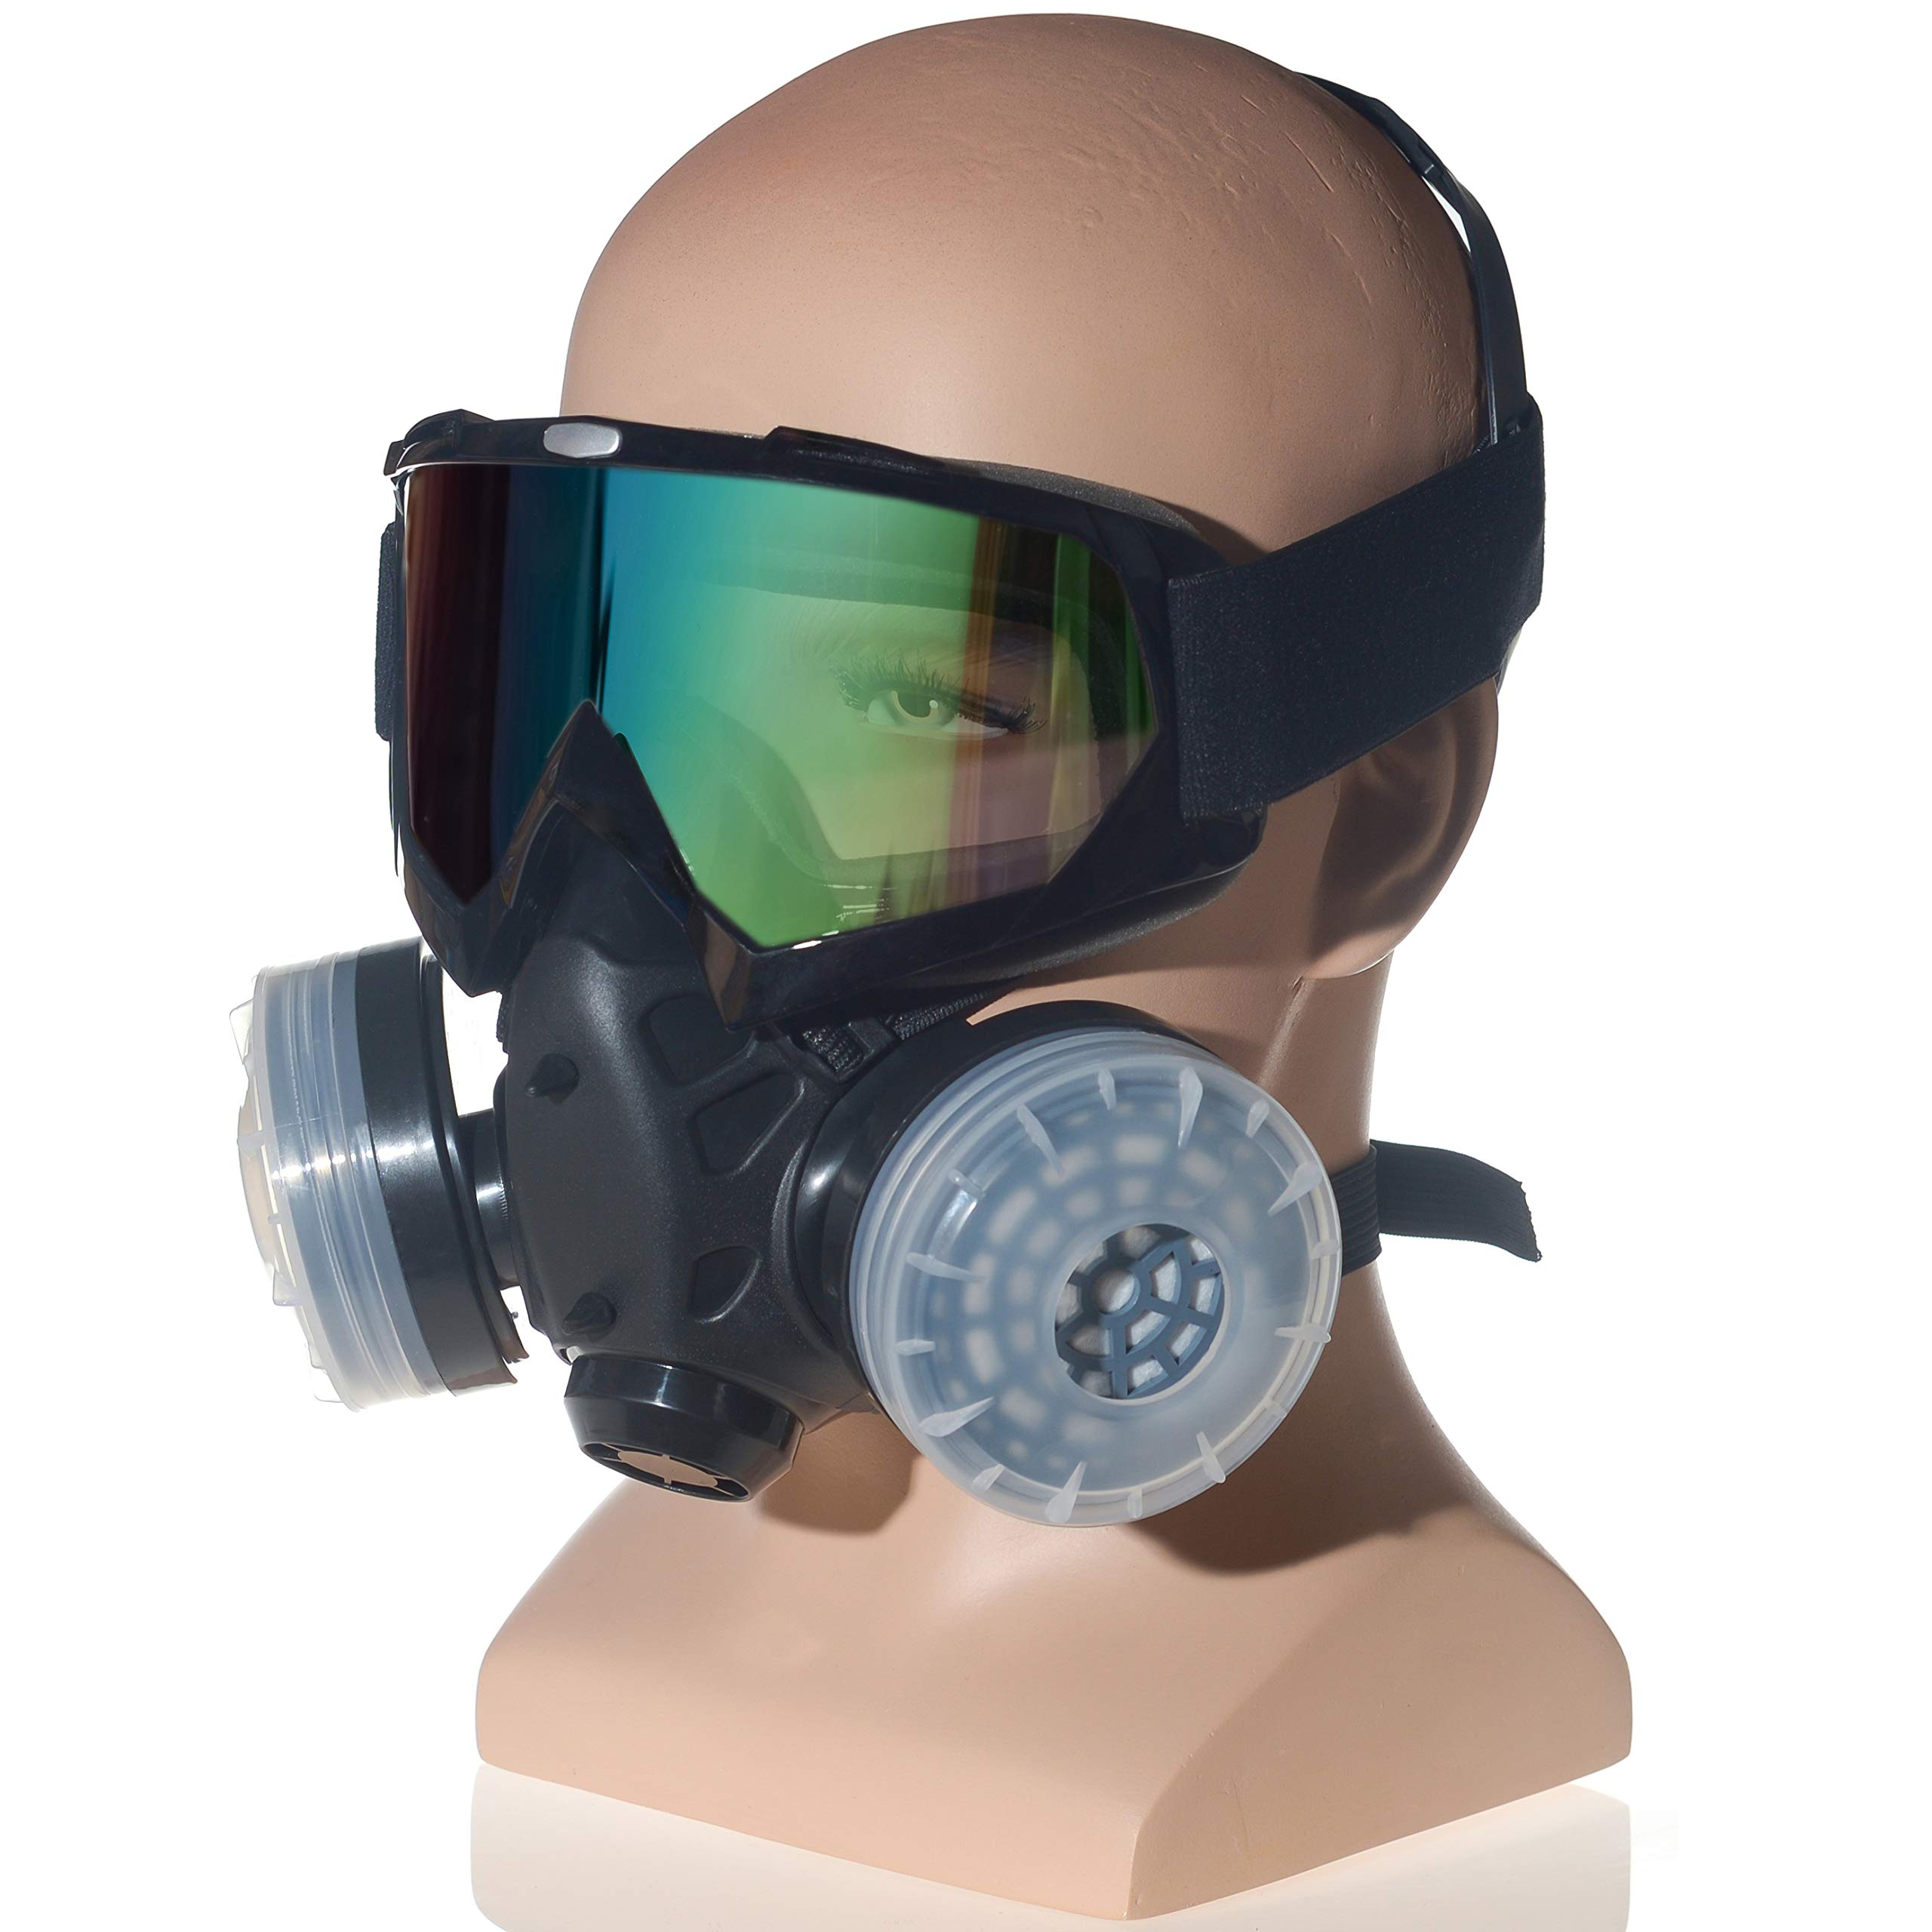 HXMY Anti-Dust Paint Respirator Reusable Face Mask Goggles Set by HXMY